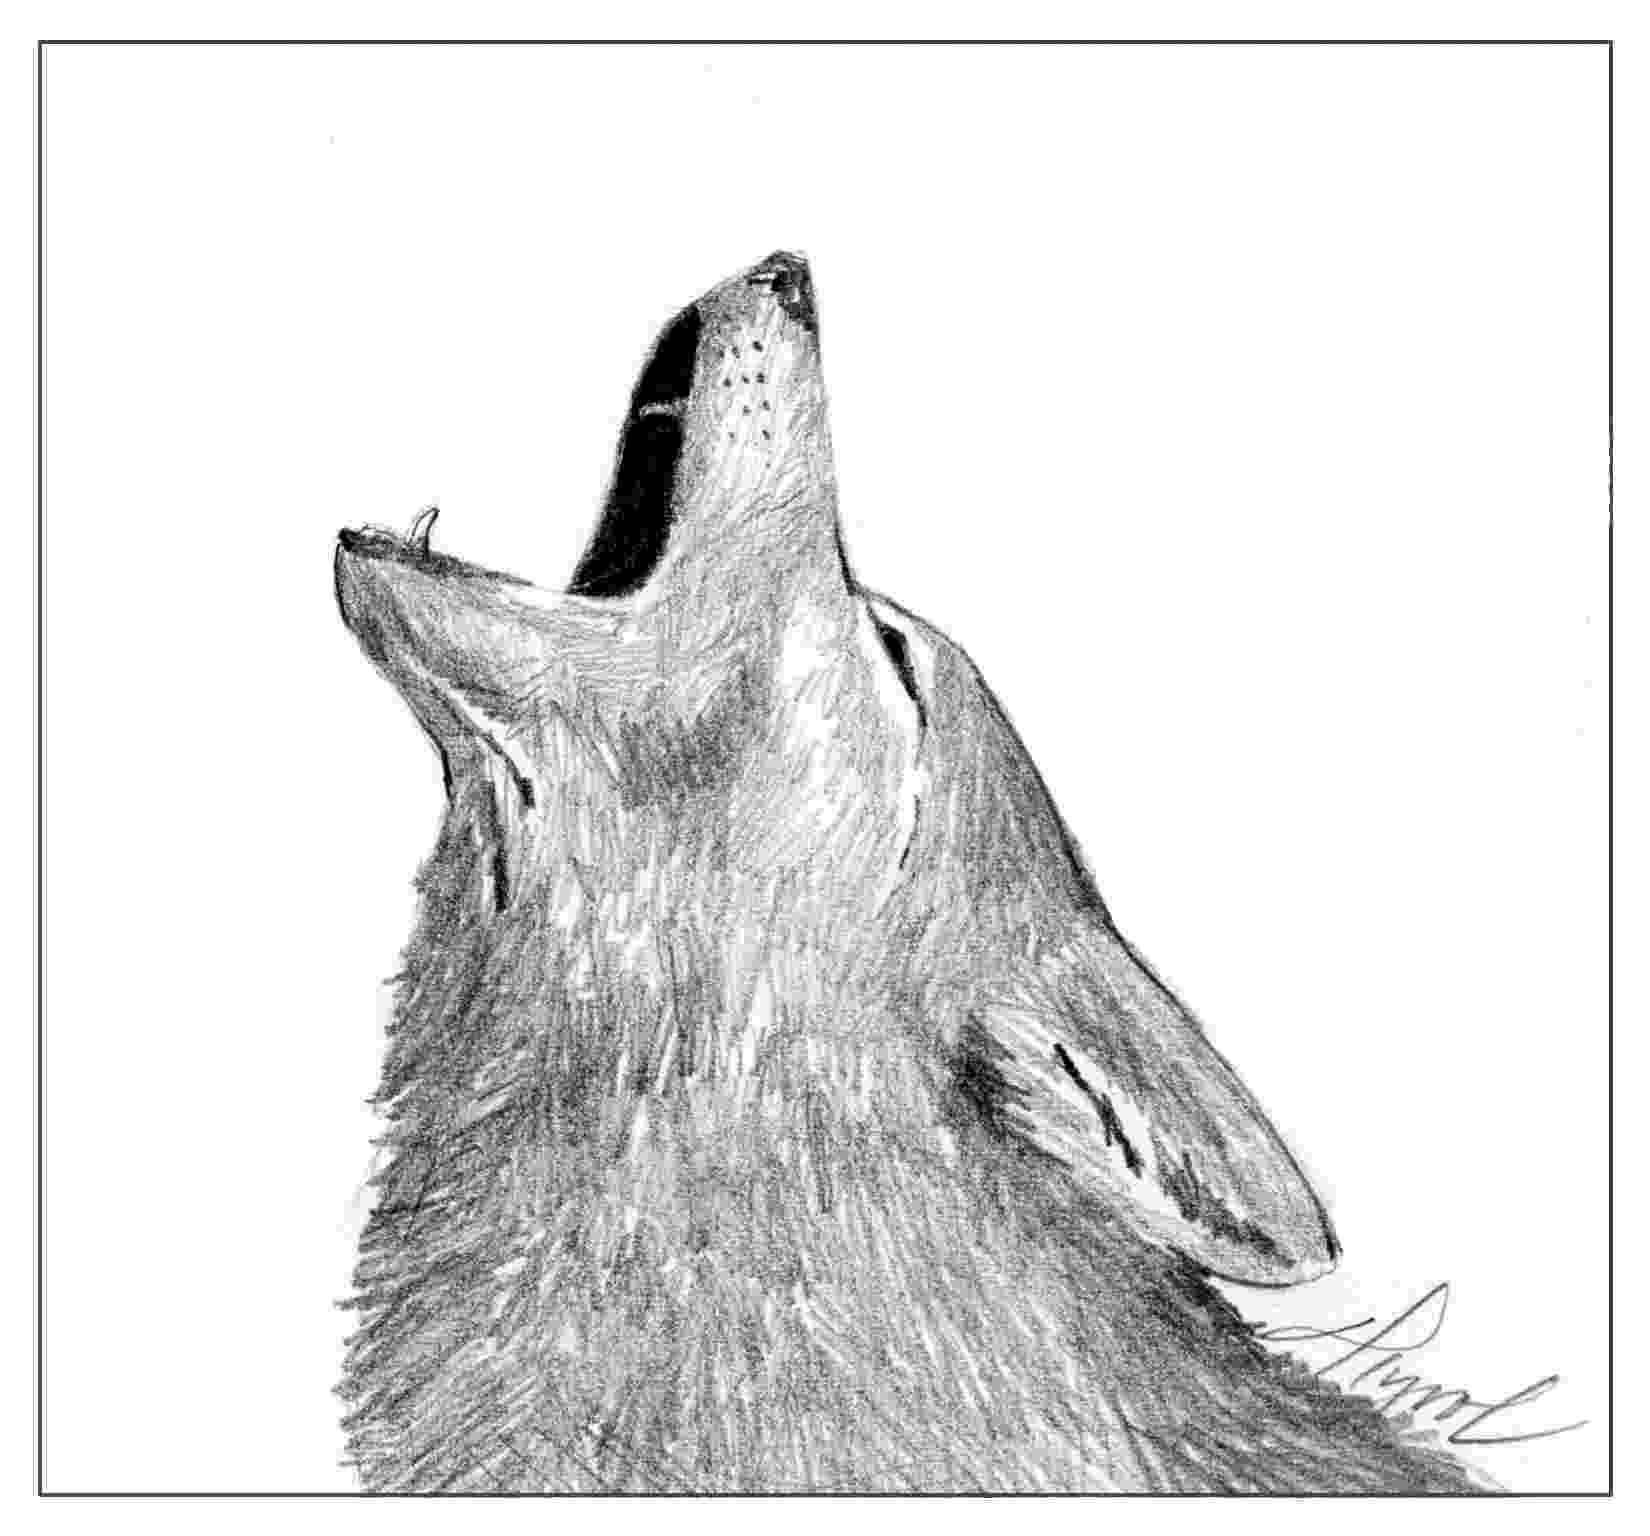 picture of coyote howling at the moon coyotes decoding their yips barks and howls the coyote the of picture moon at howling